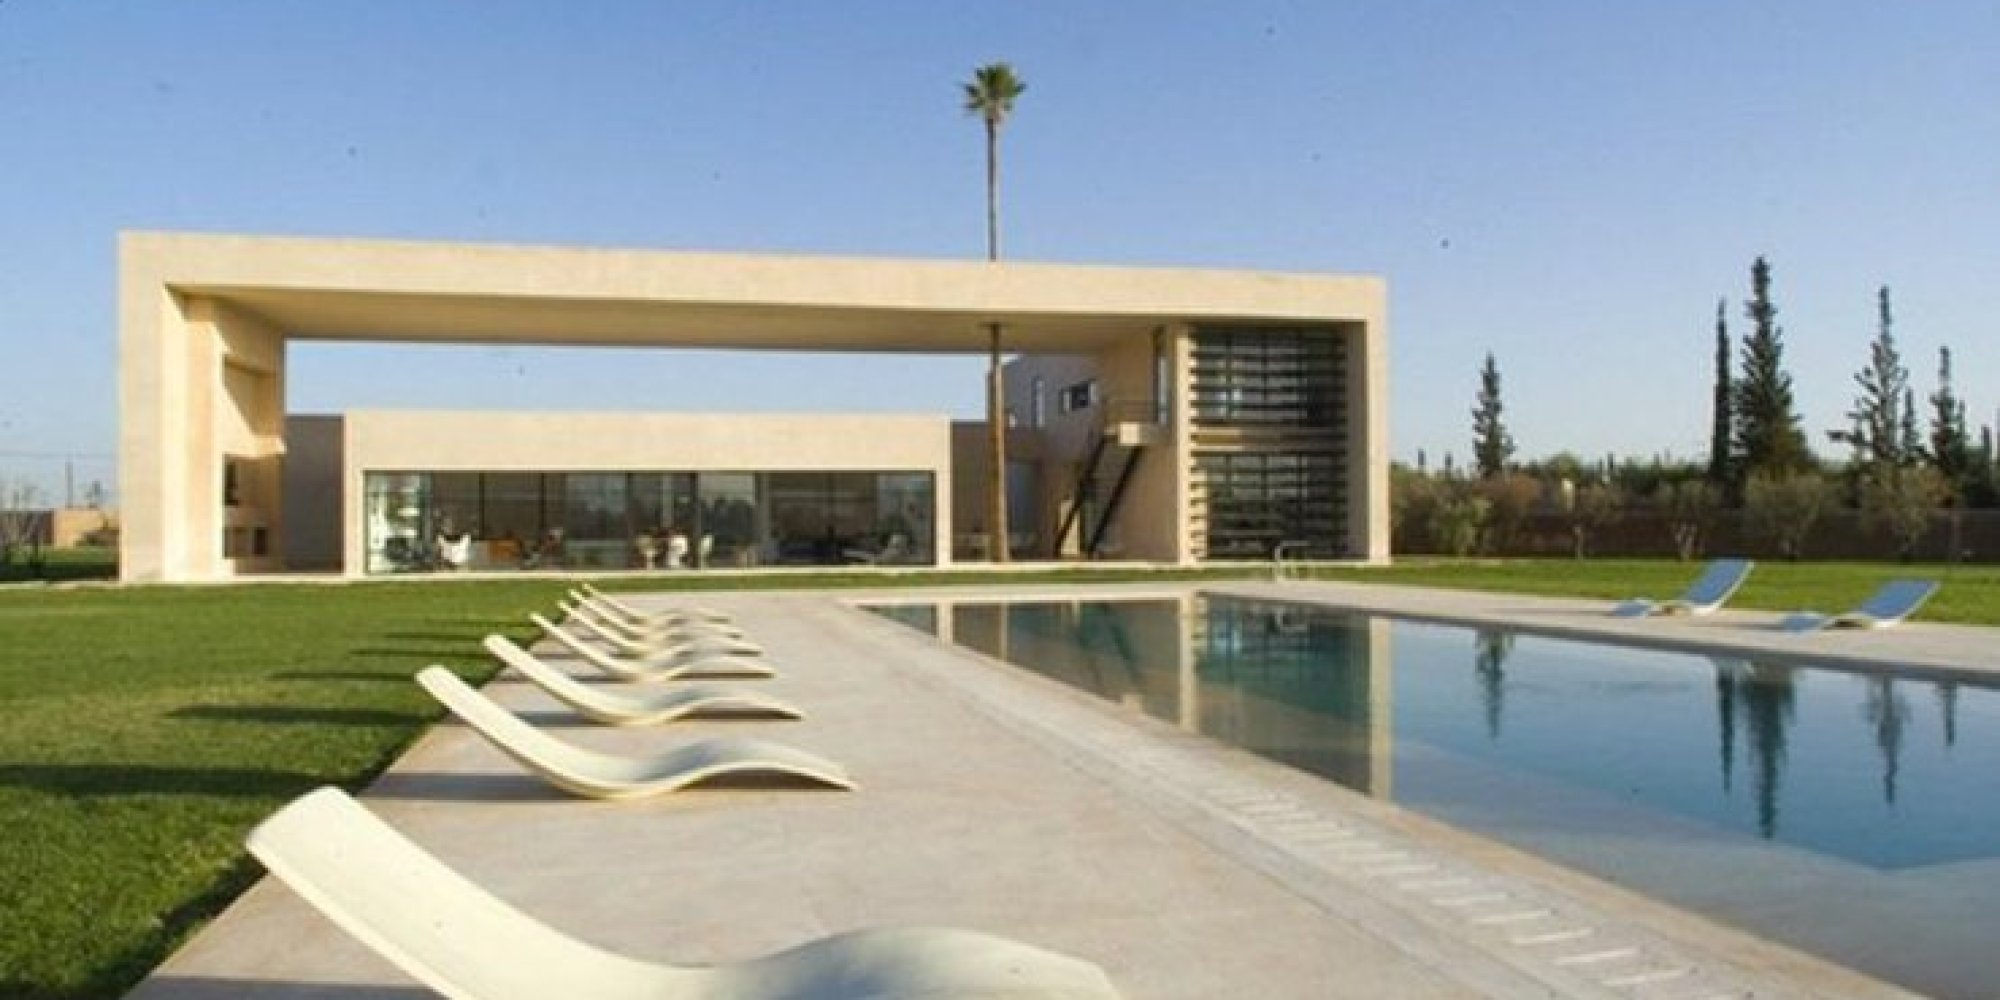 La maison de james bond mise en vente marrakech - Villa decor desert o architecture ...